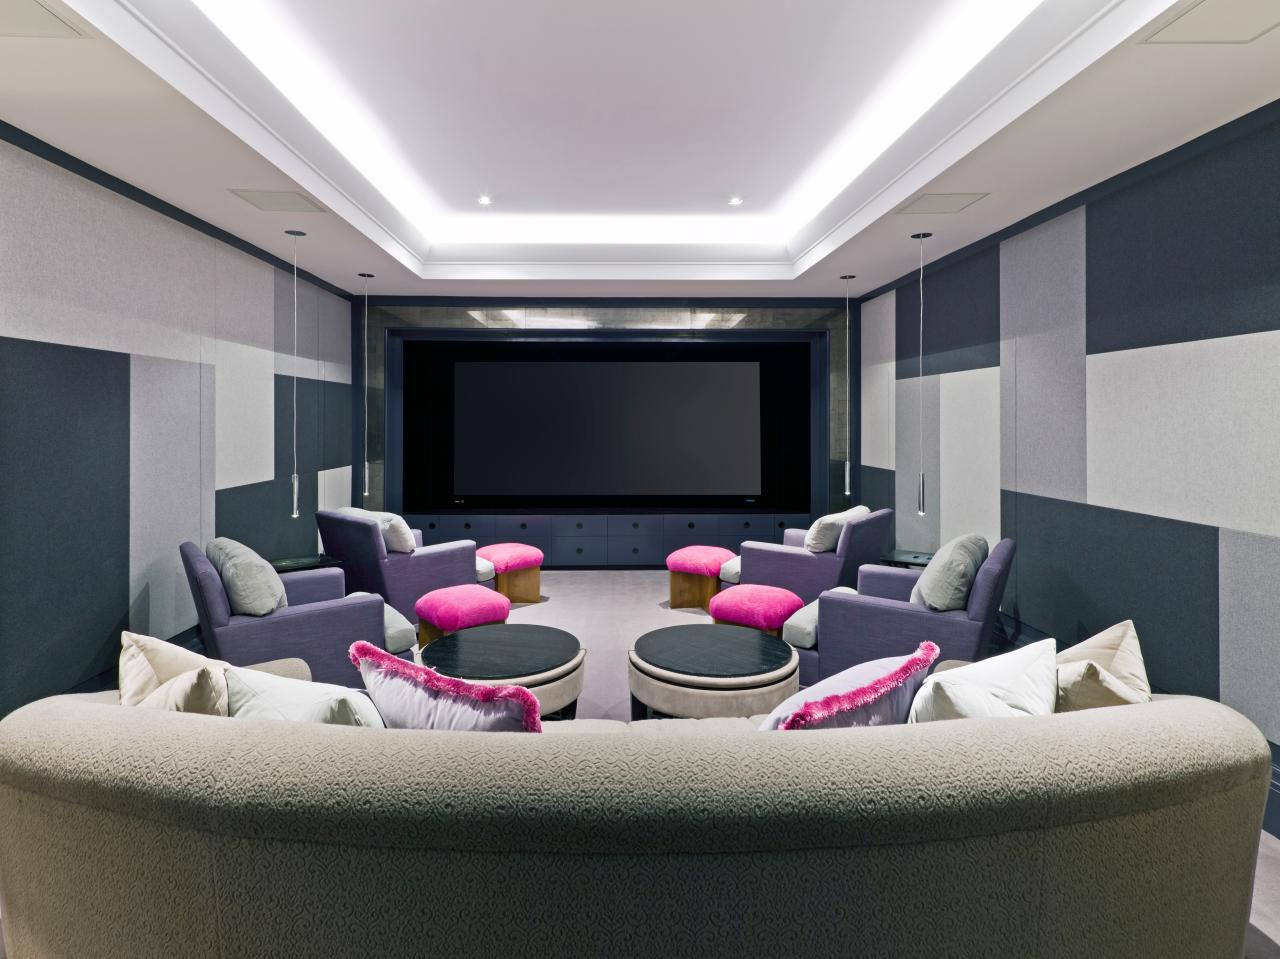 Home Theater Design Ideas black ceiling with white stone walls custom home theater design ideas Jaw Dropping Home Theater